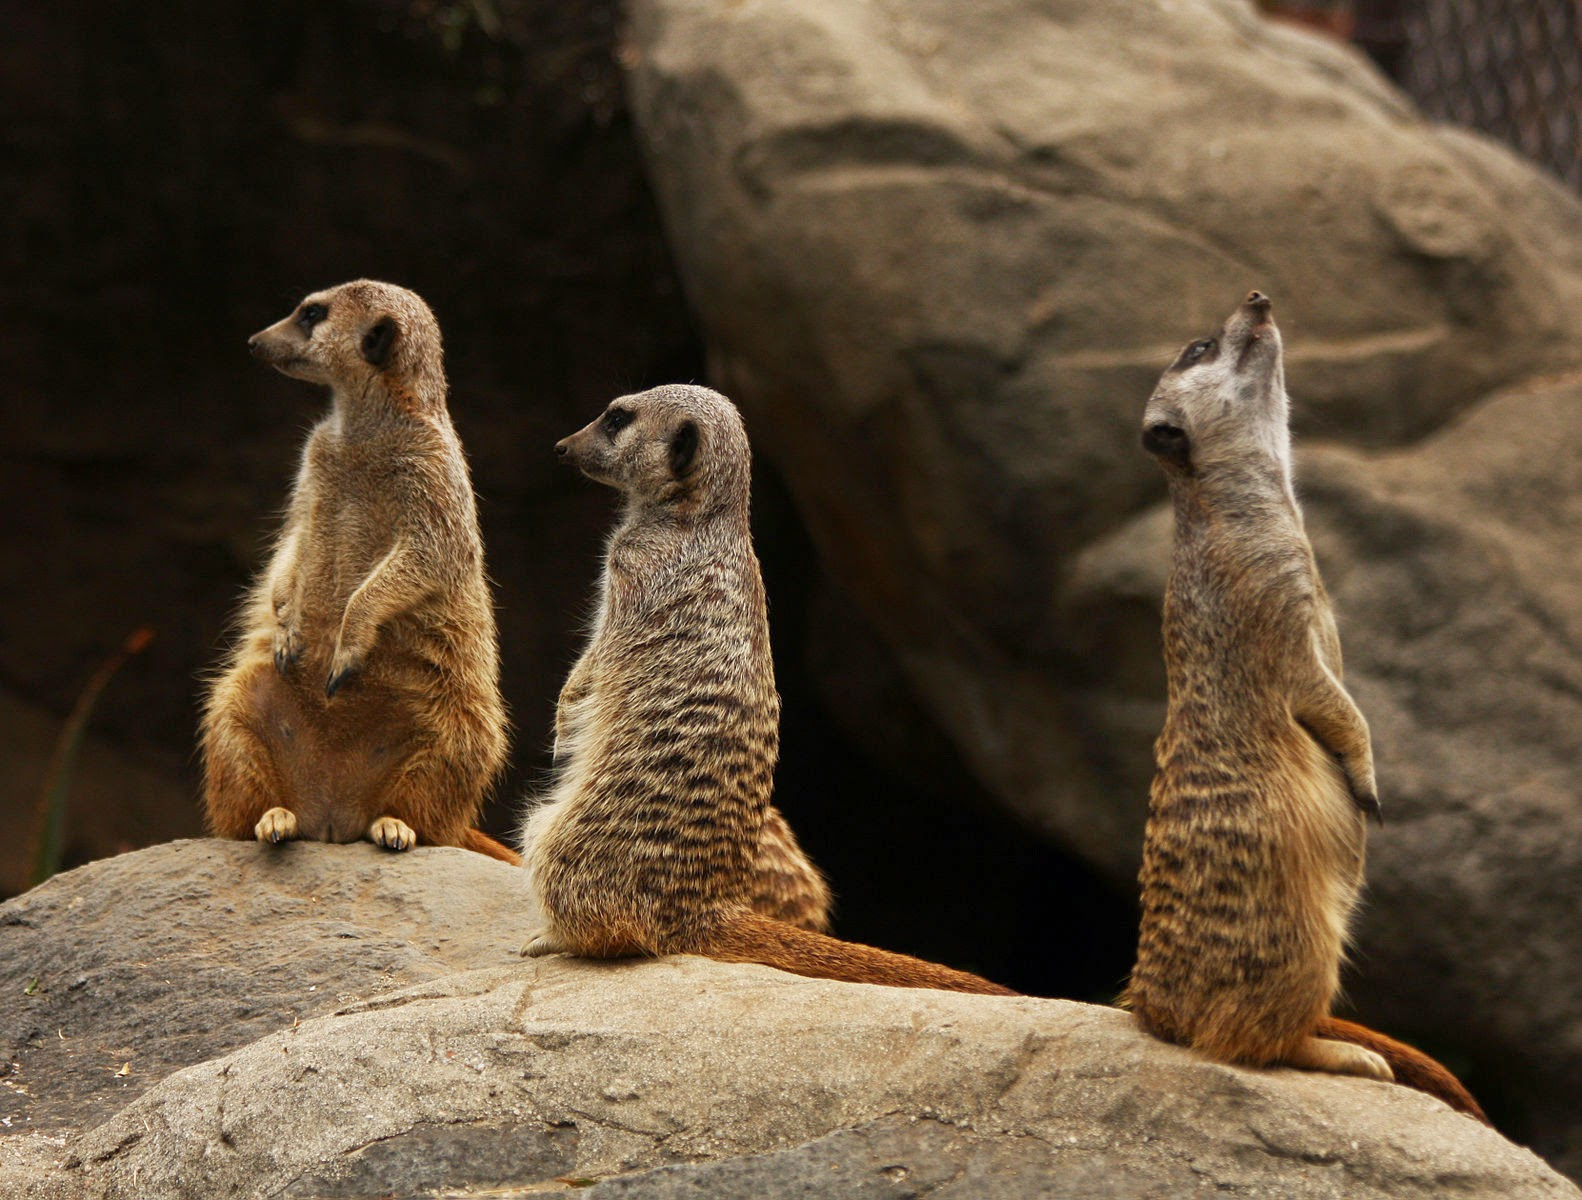 http://upload.wikimedia.org/wikipedia/commons/5/57/Photograph_of_a_Meerkat_Family_%283848828176%29.jpg